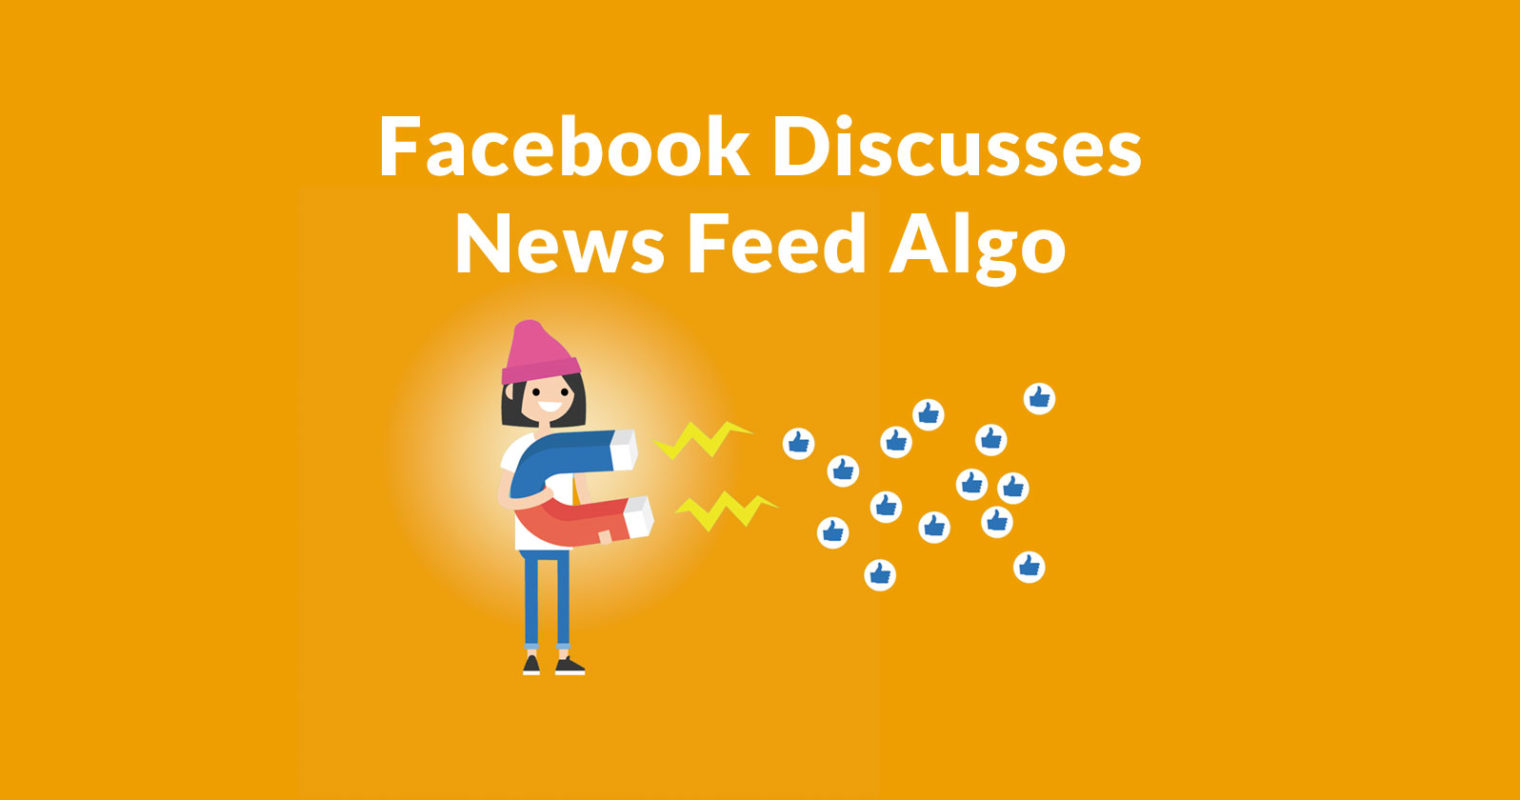 Facebook Discusses 4 Parts of their News Feed Algorithm